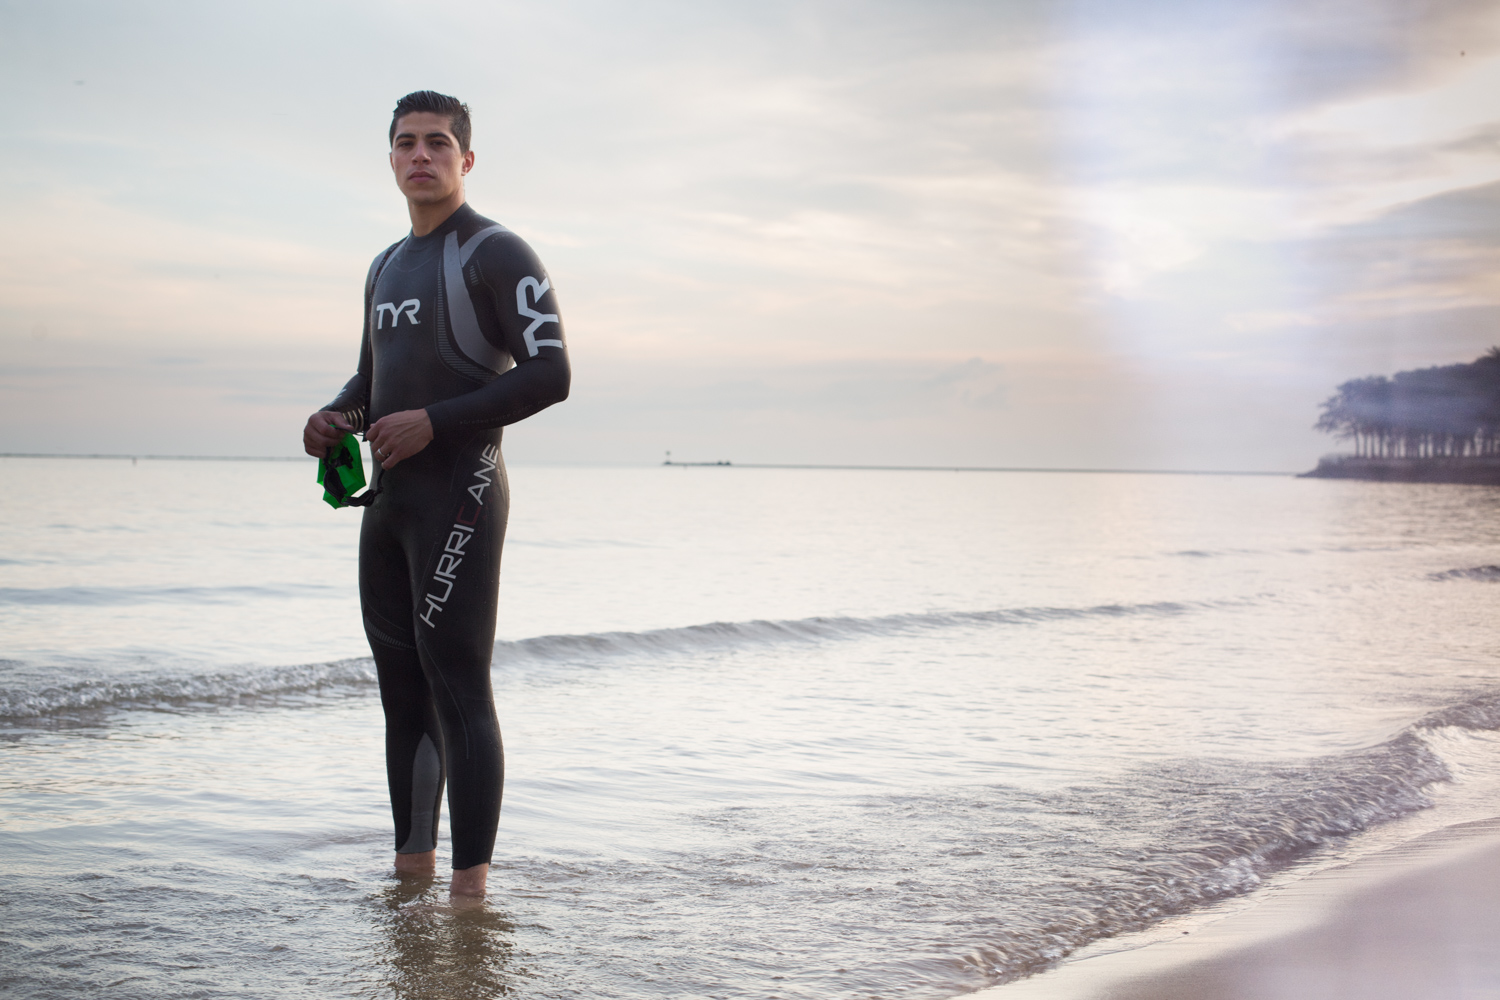 man-in-a-wetsuit-on-the-beach